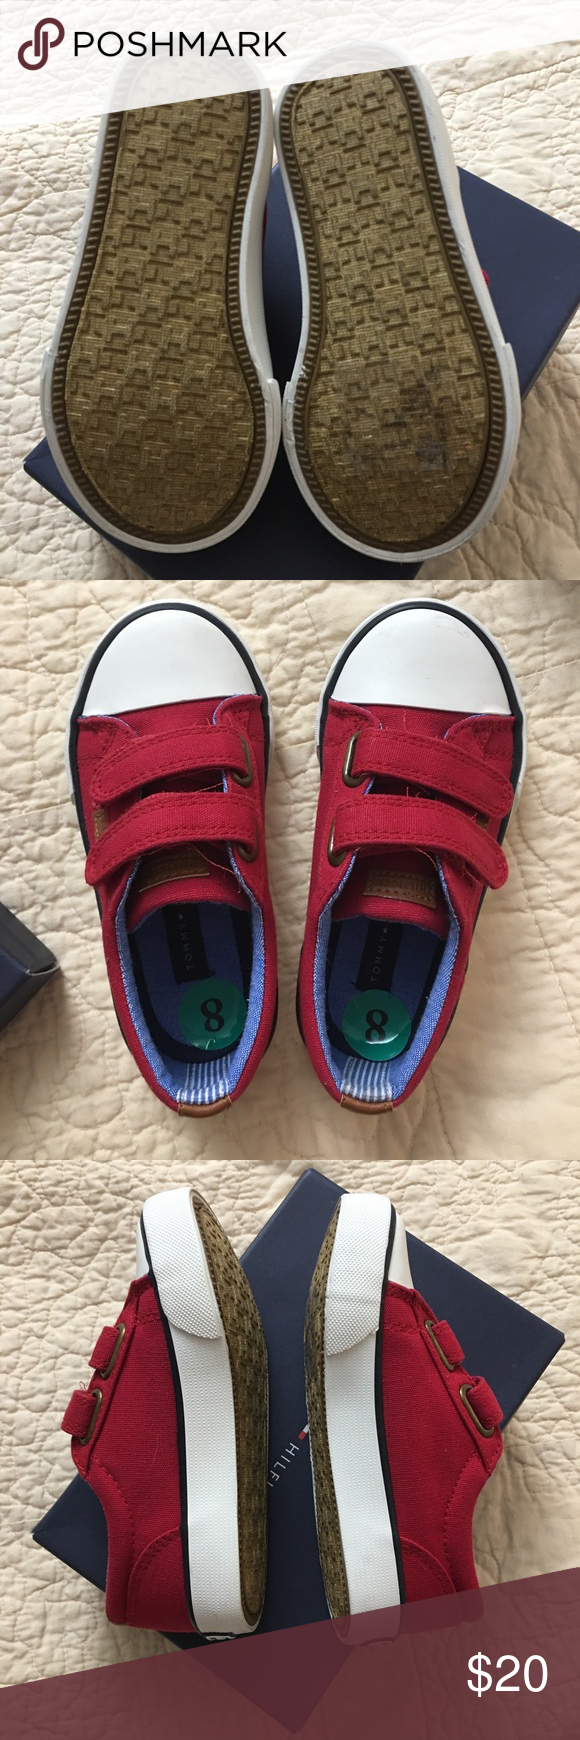 4ccf3180d5068f Tommy Hilfiger baby shoes Super cute red tennis shoes for boy or girl. Tommy  Hilfiger Shoes Sneakers